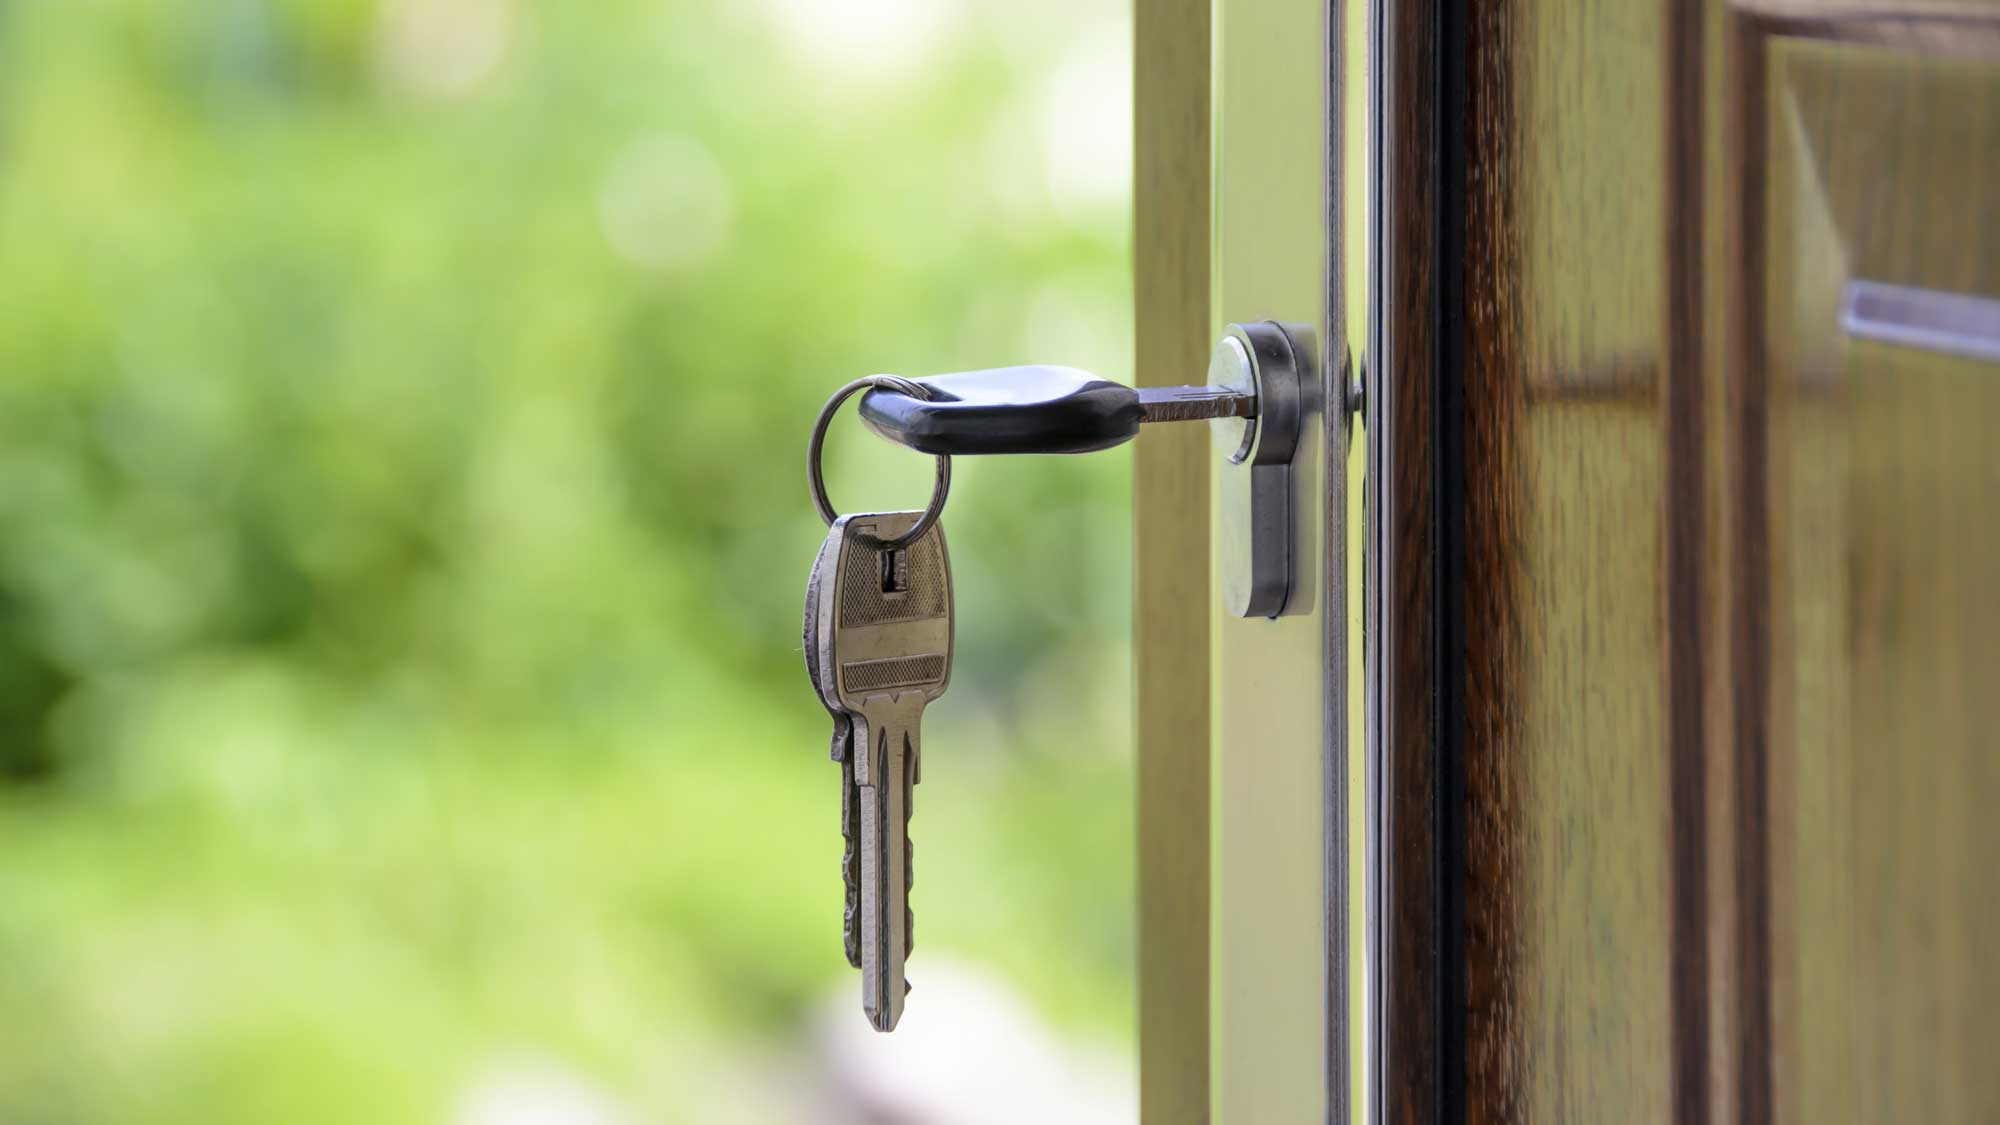 A key on an open door denoting real estate